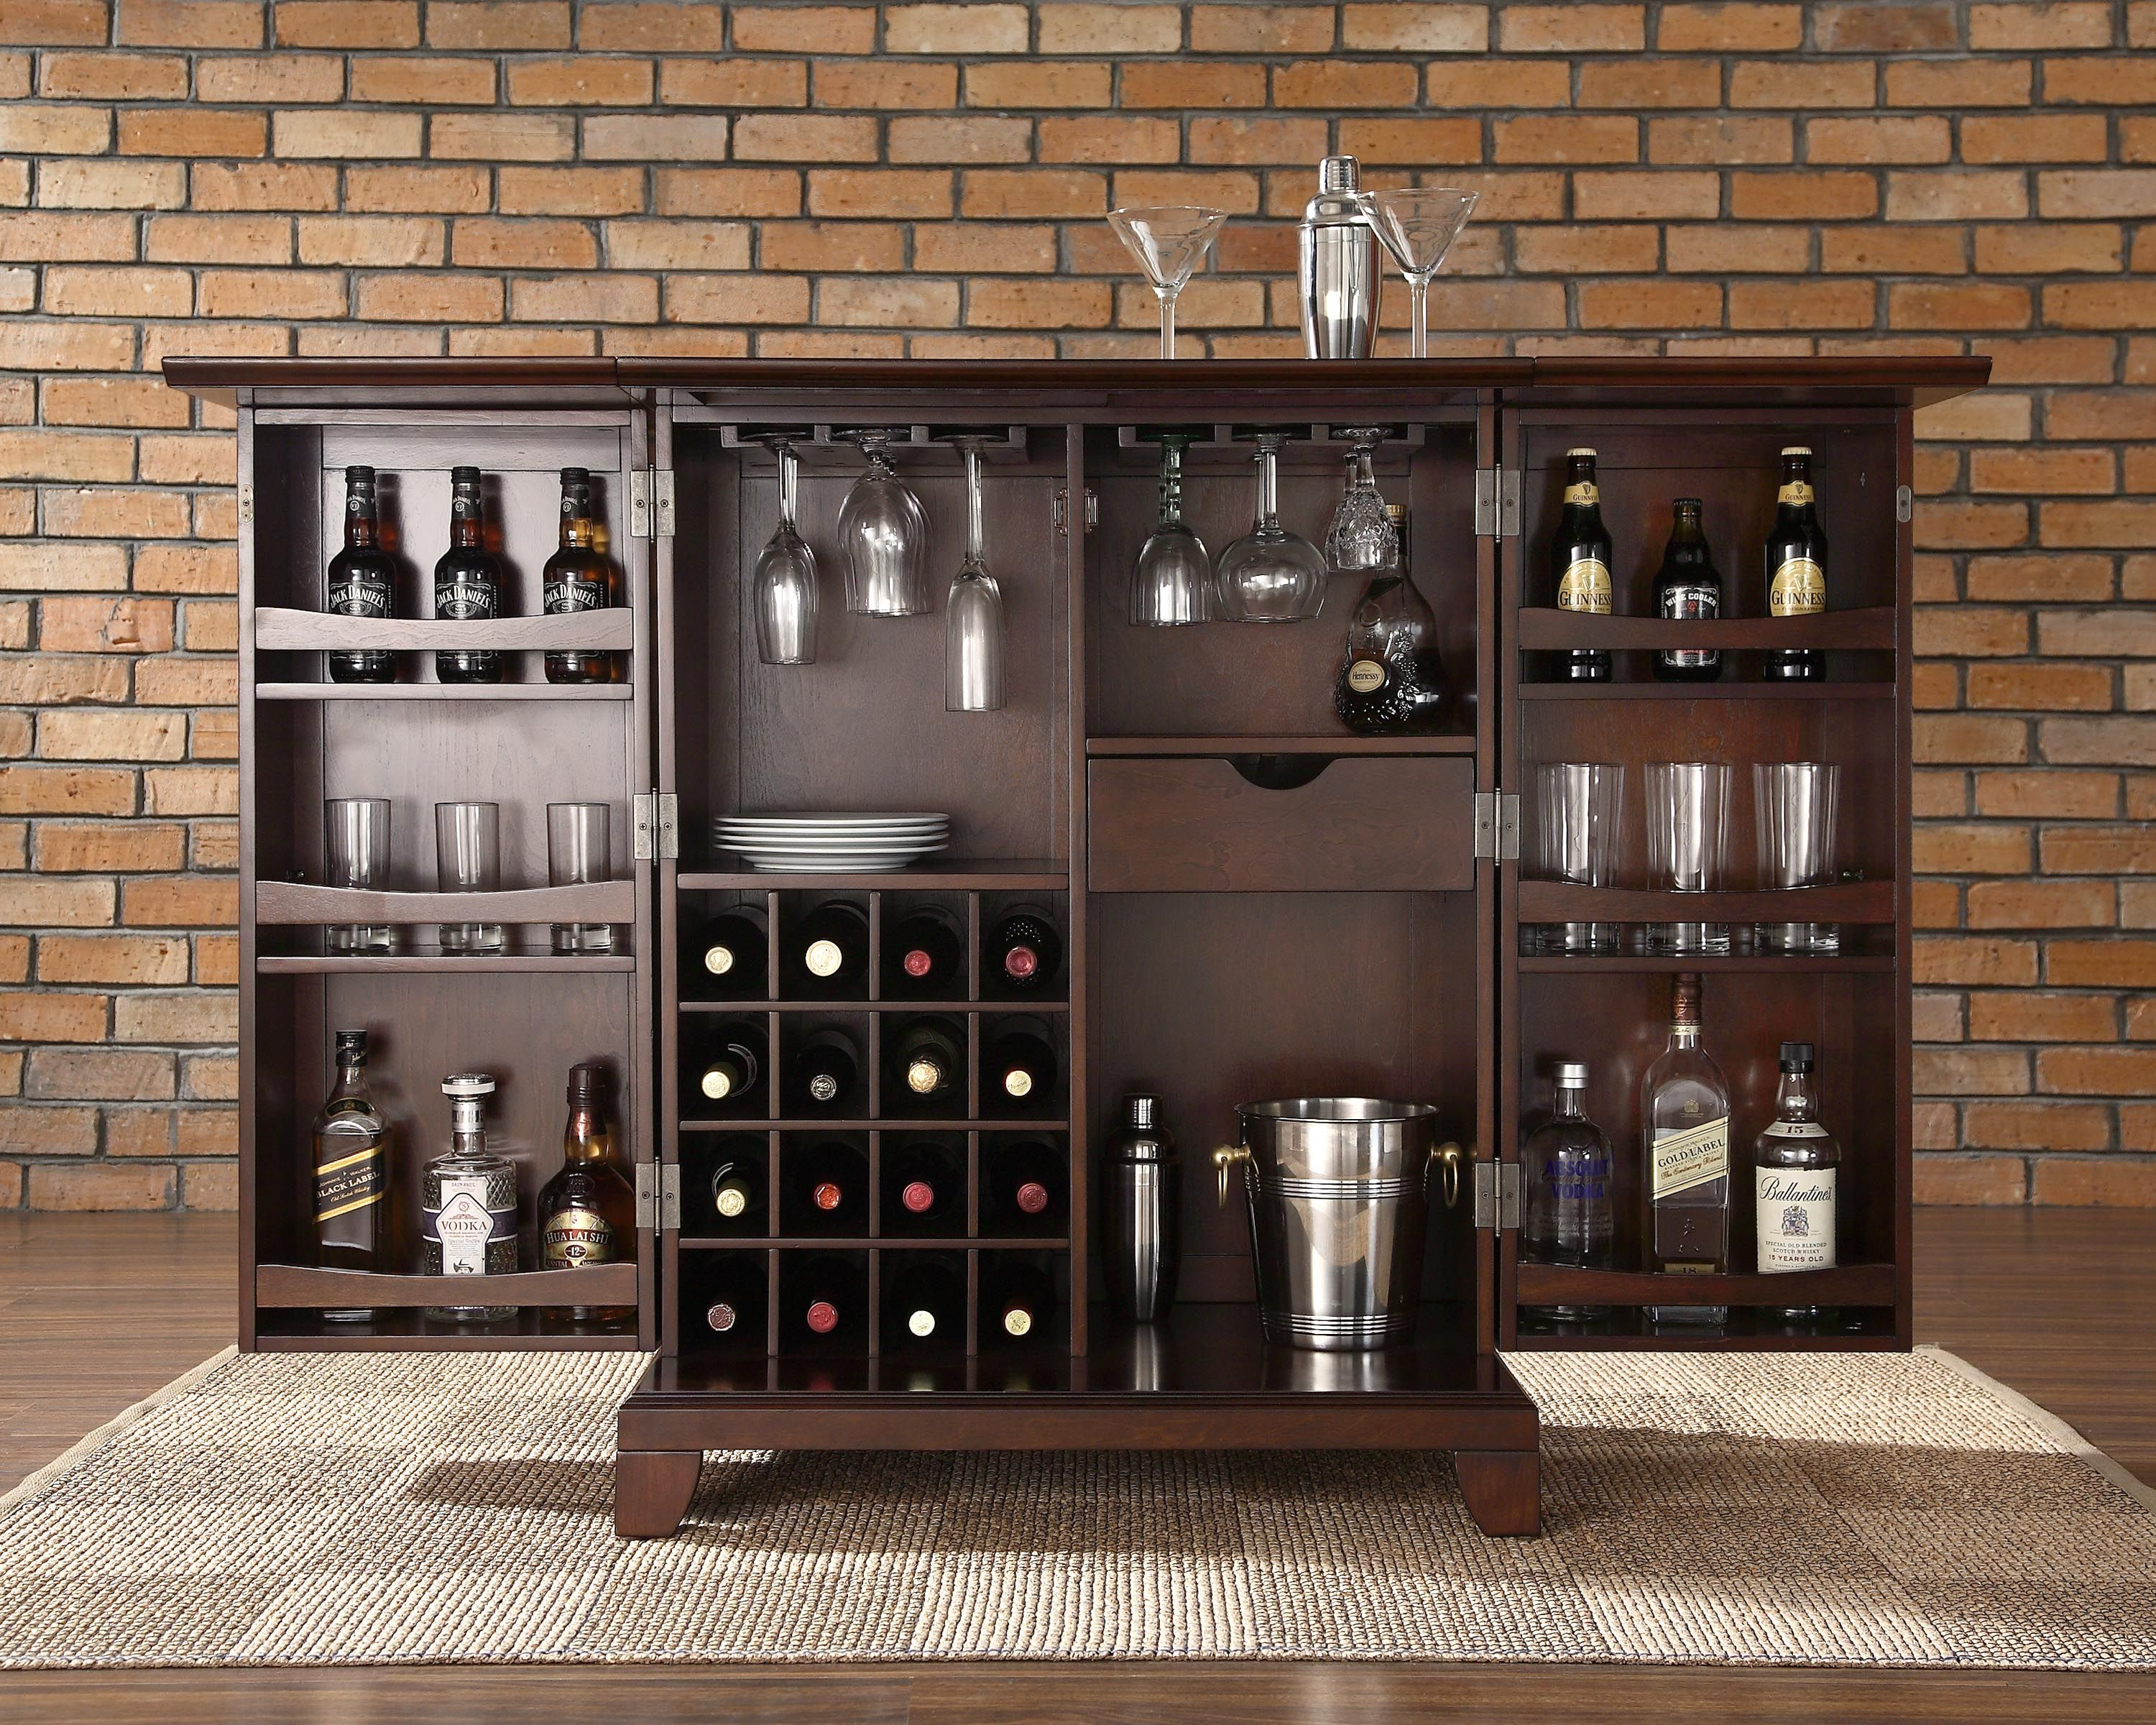 Liquor Cabinet Bar Furniture #34: 1000+ Images About Liquor Cabinet Design On Pinterest | Steamers, Gustav Stickley And French Art